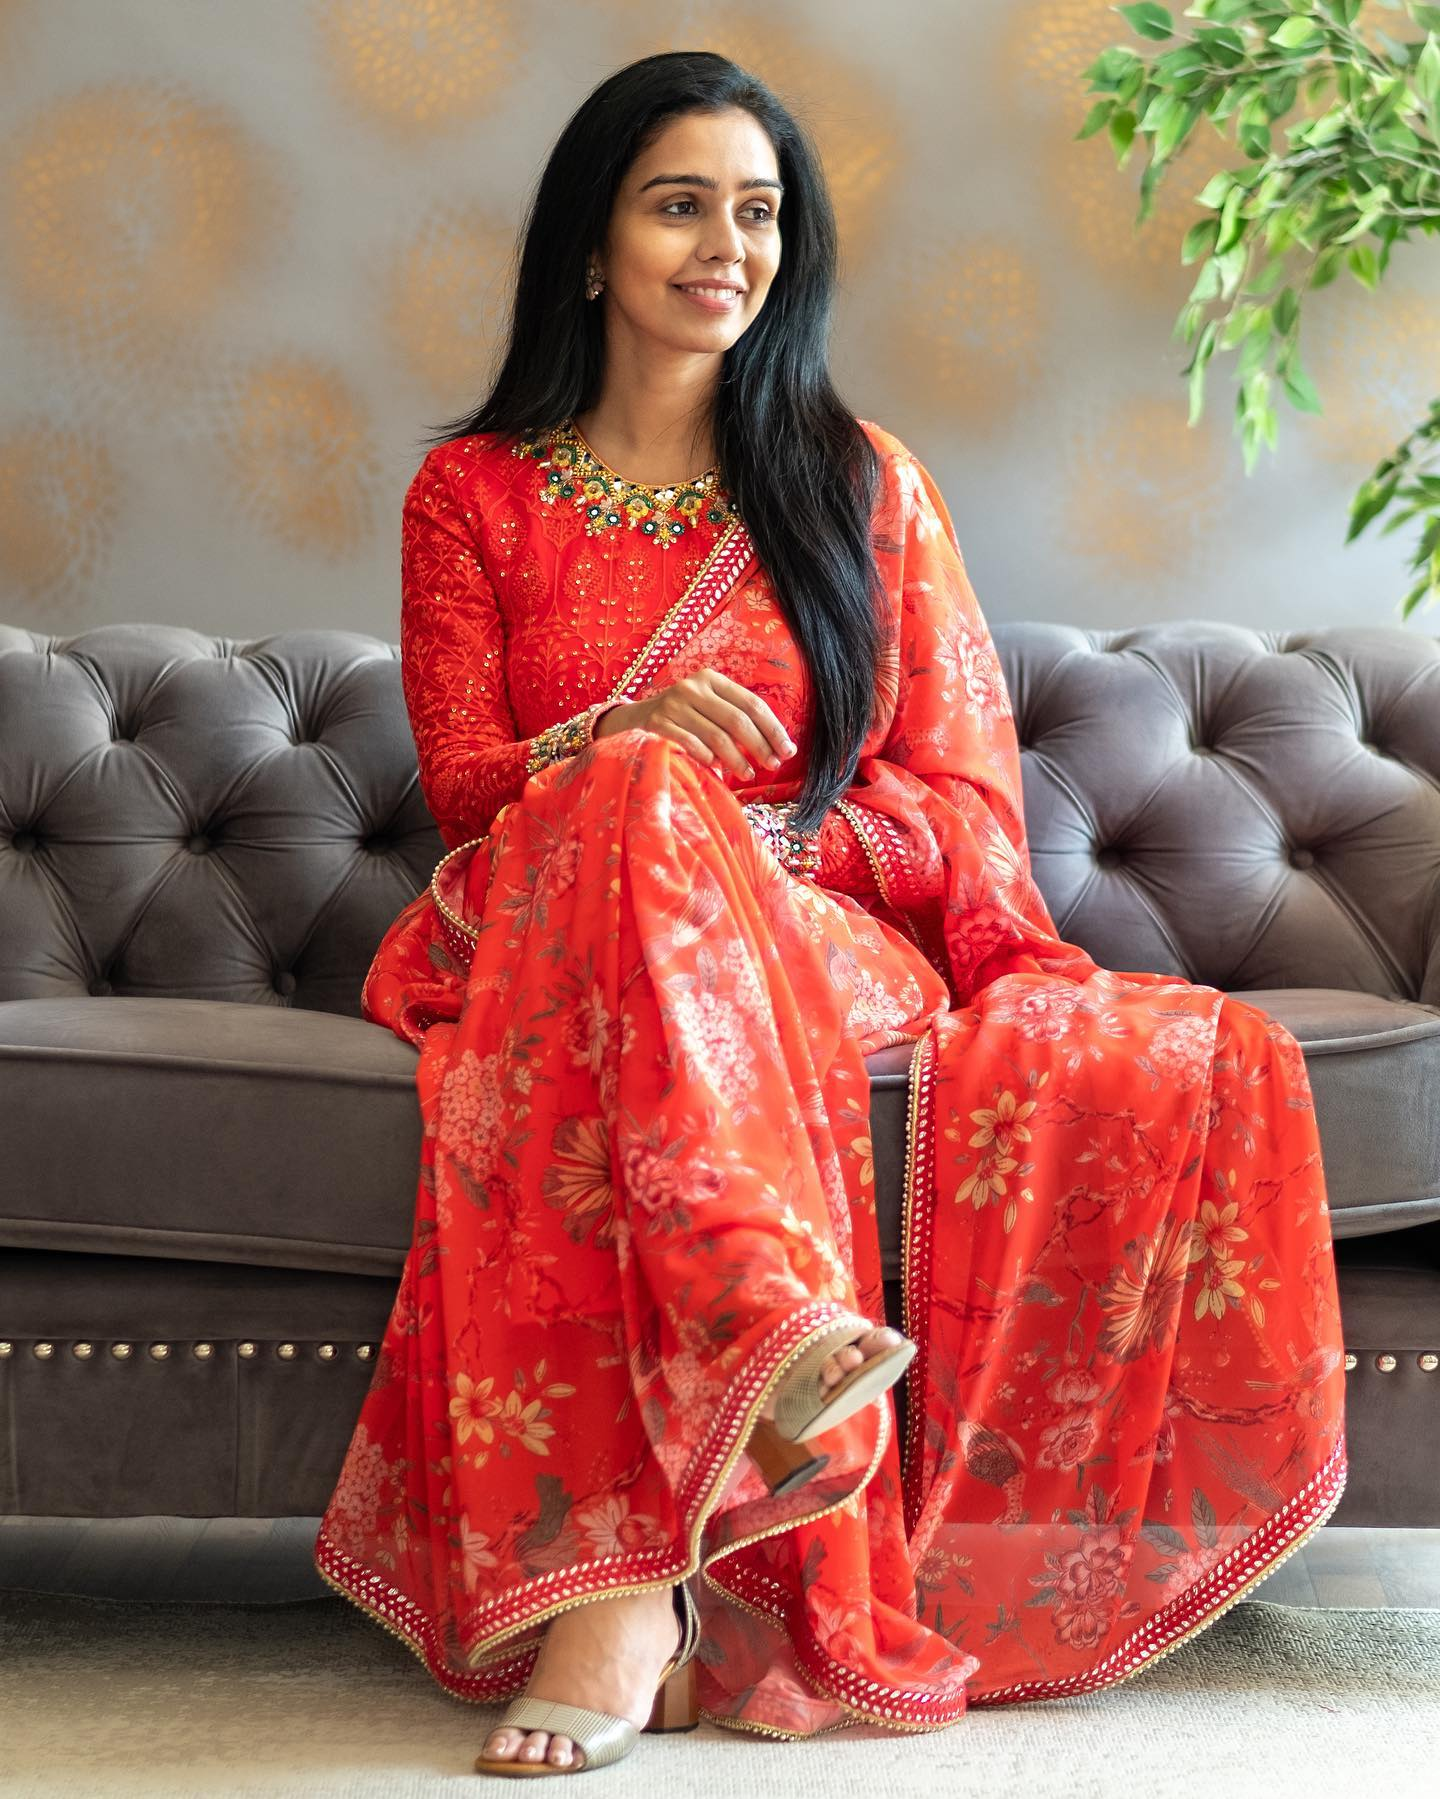 Orangey red floral saree paired with a full sleeved Chikankari blouse.  . . To order: Whatsapp/ Call : 9949944178 Email : info@issastudio.com 2021-06-02